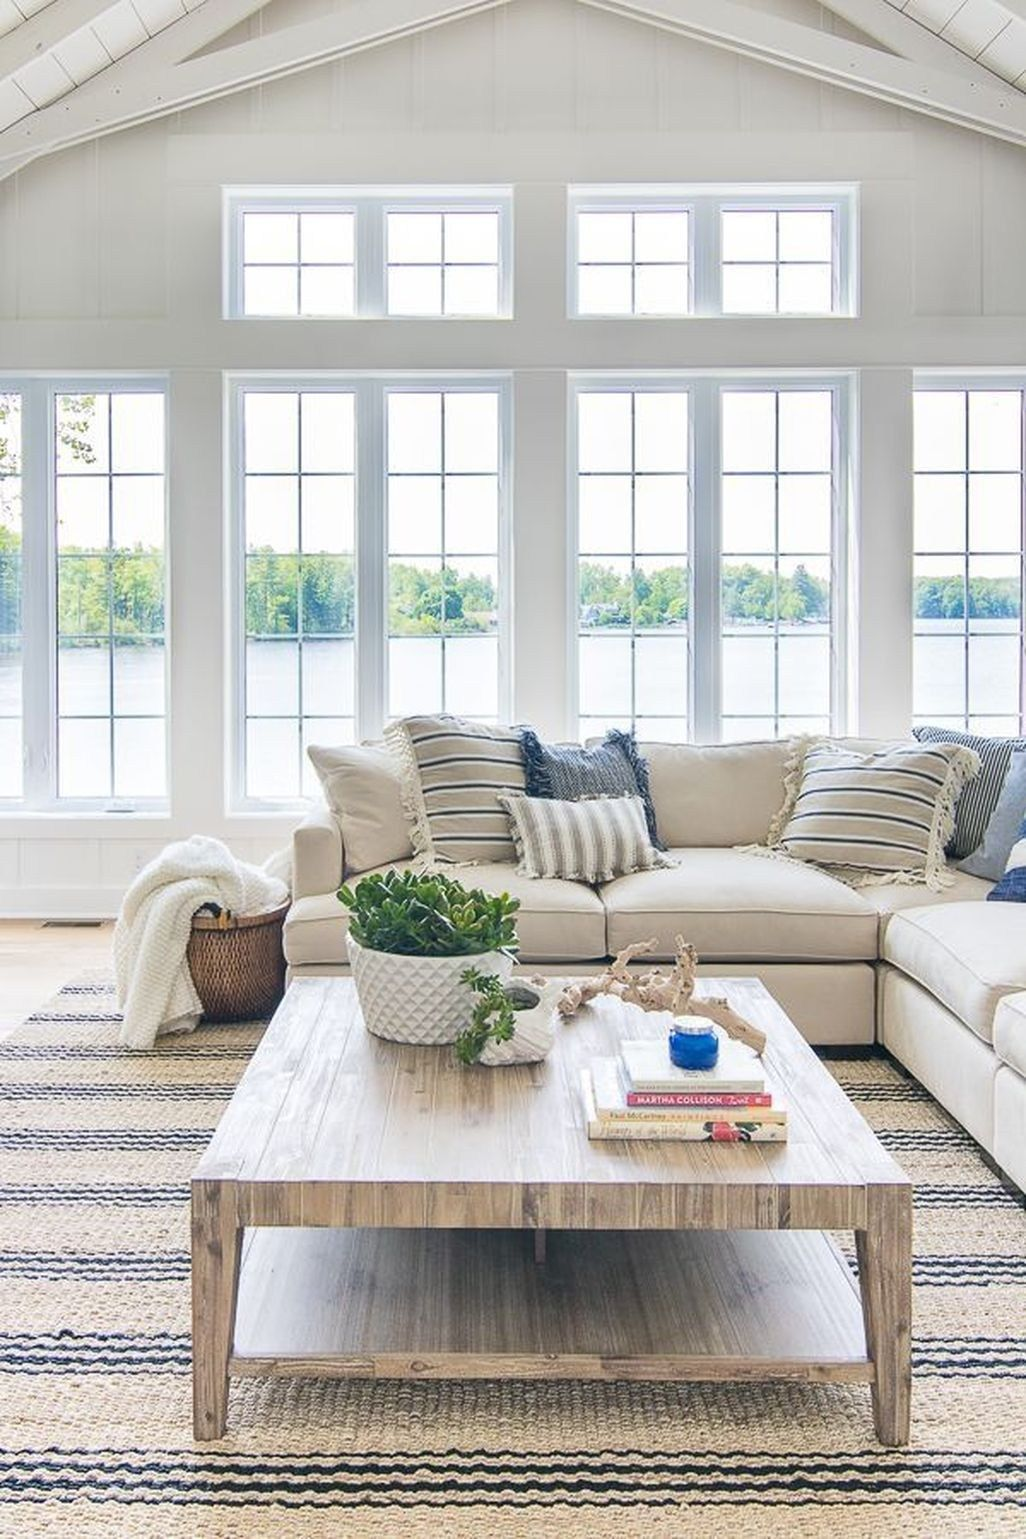 Unique Lake House Decorating Ideas 06 Farm House Living Room